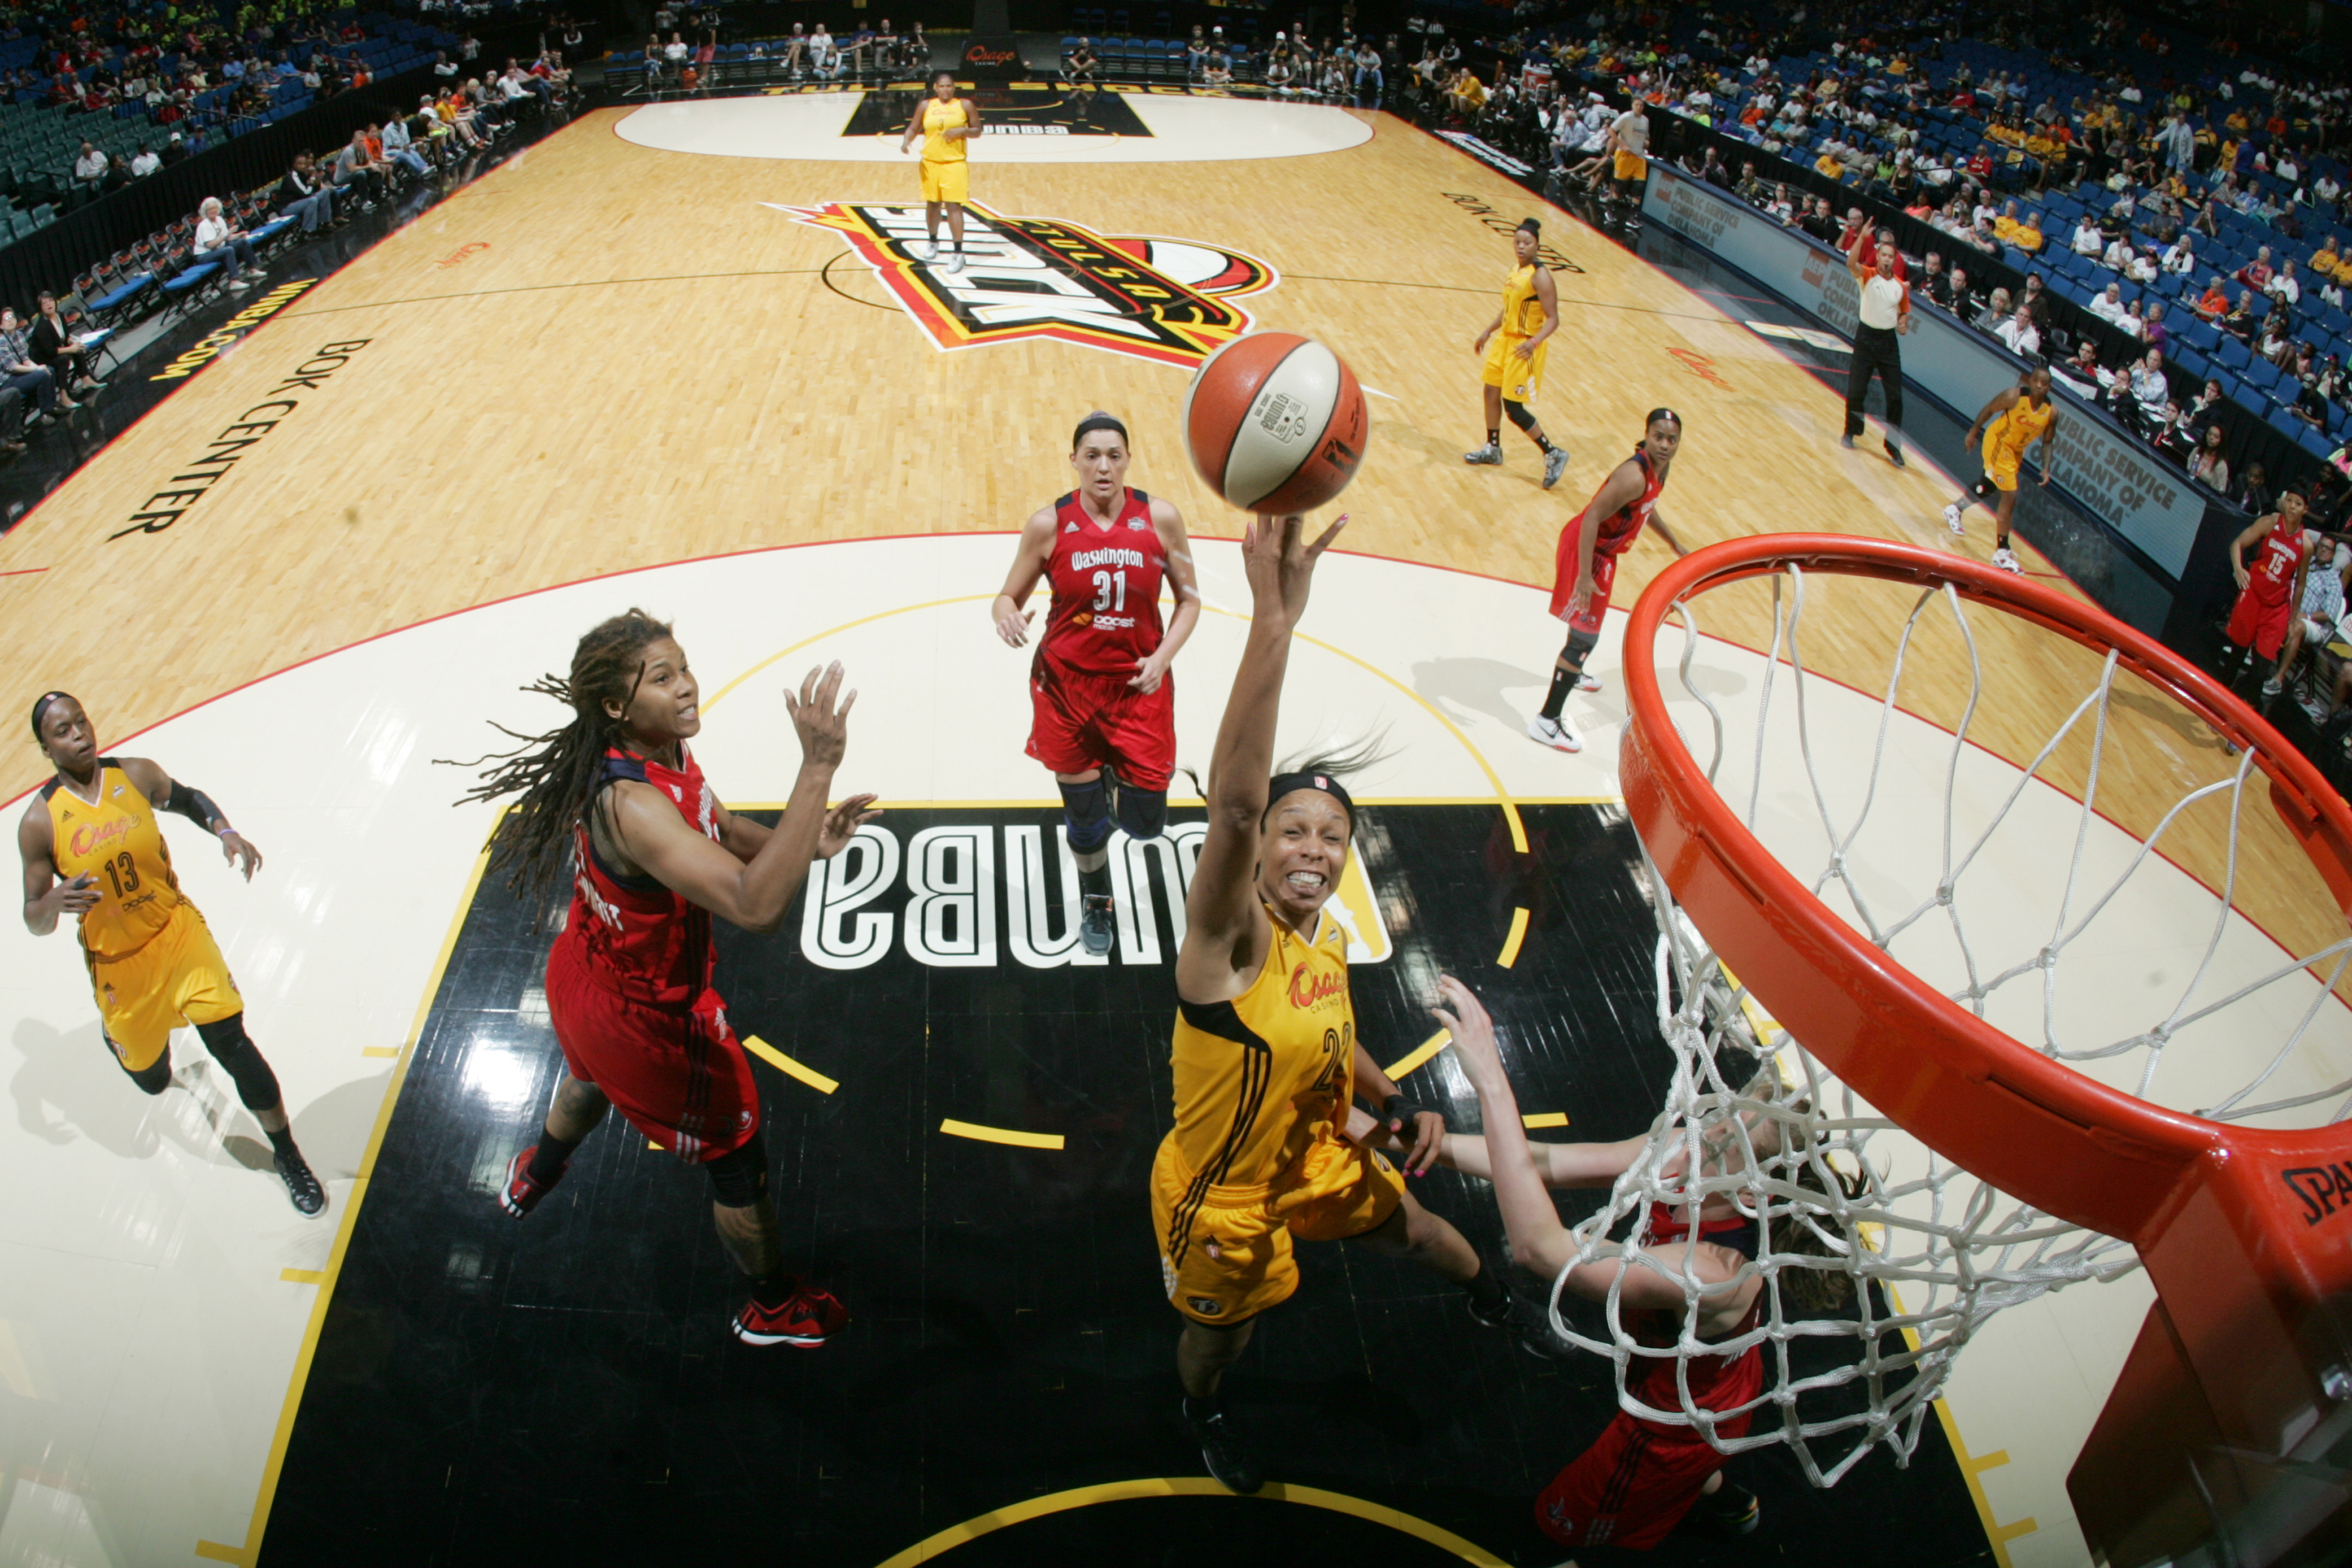 TULSA, OK - JULY 21:  Plenette Pierson #22 of the Tulsa Shock shoots the ball against the Washington Mystics in a WNBA game on July 21, 2015 at the BOK Center in Tulsa, Oklahoma.  (Photo by Shane Bevel/NBAE via Getty Images)